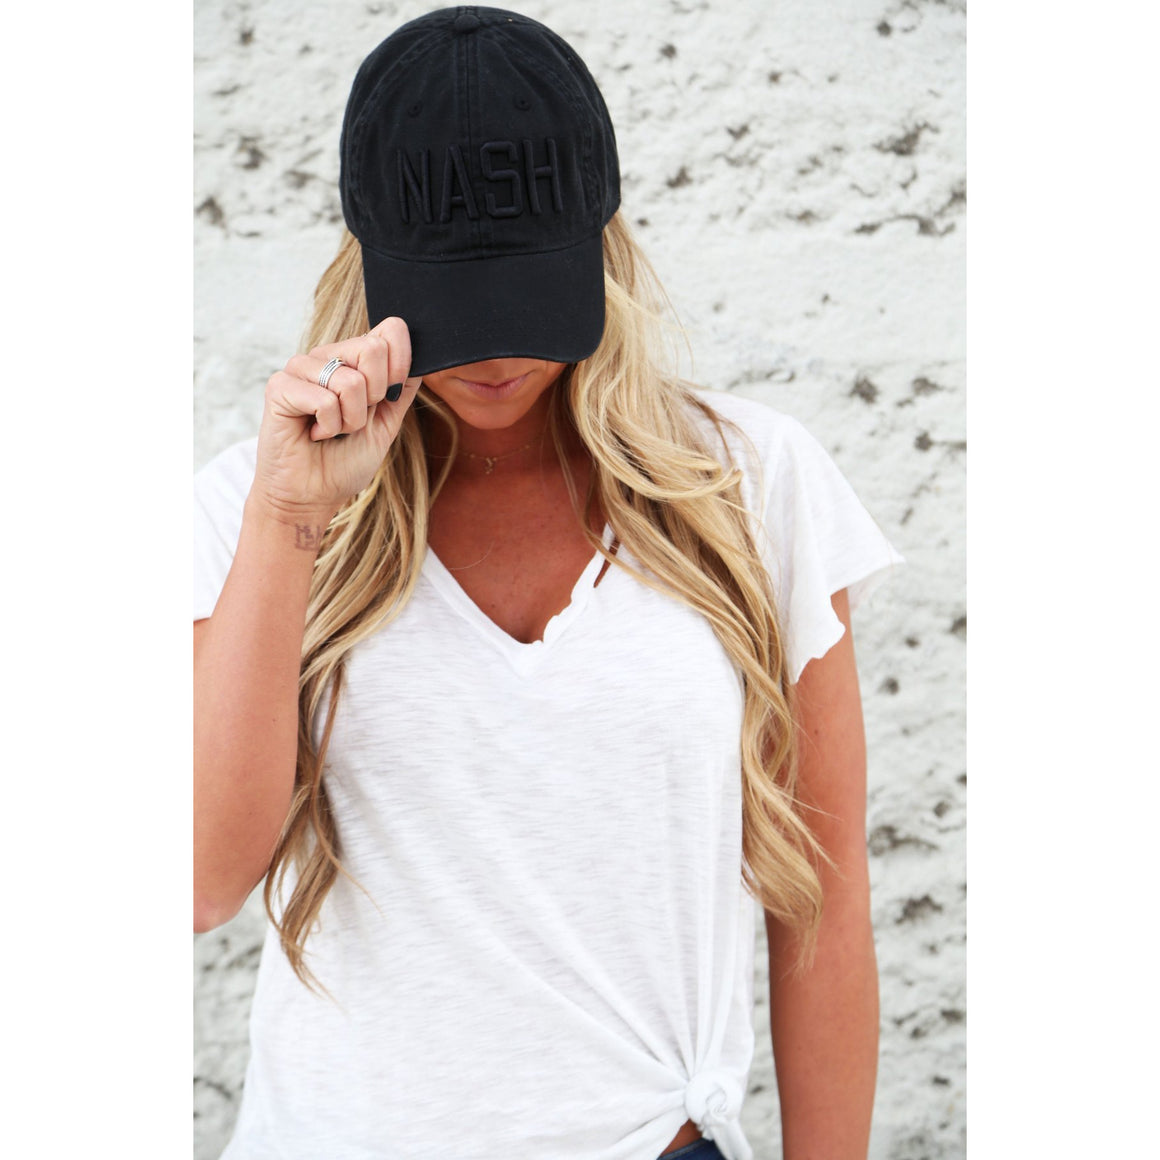 Blackout NASH Original Ball Cap